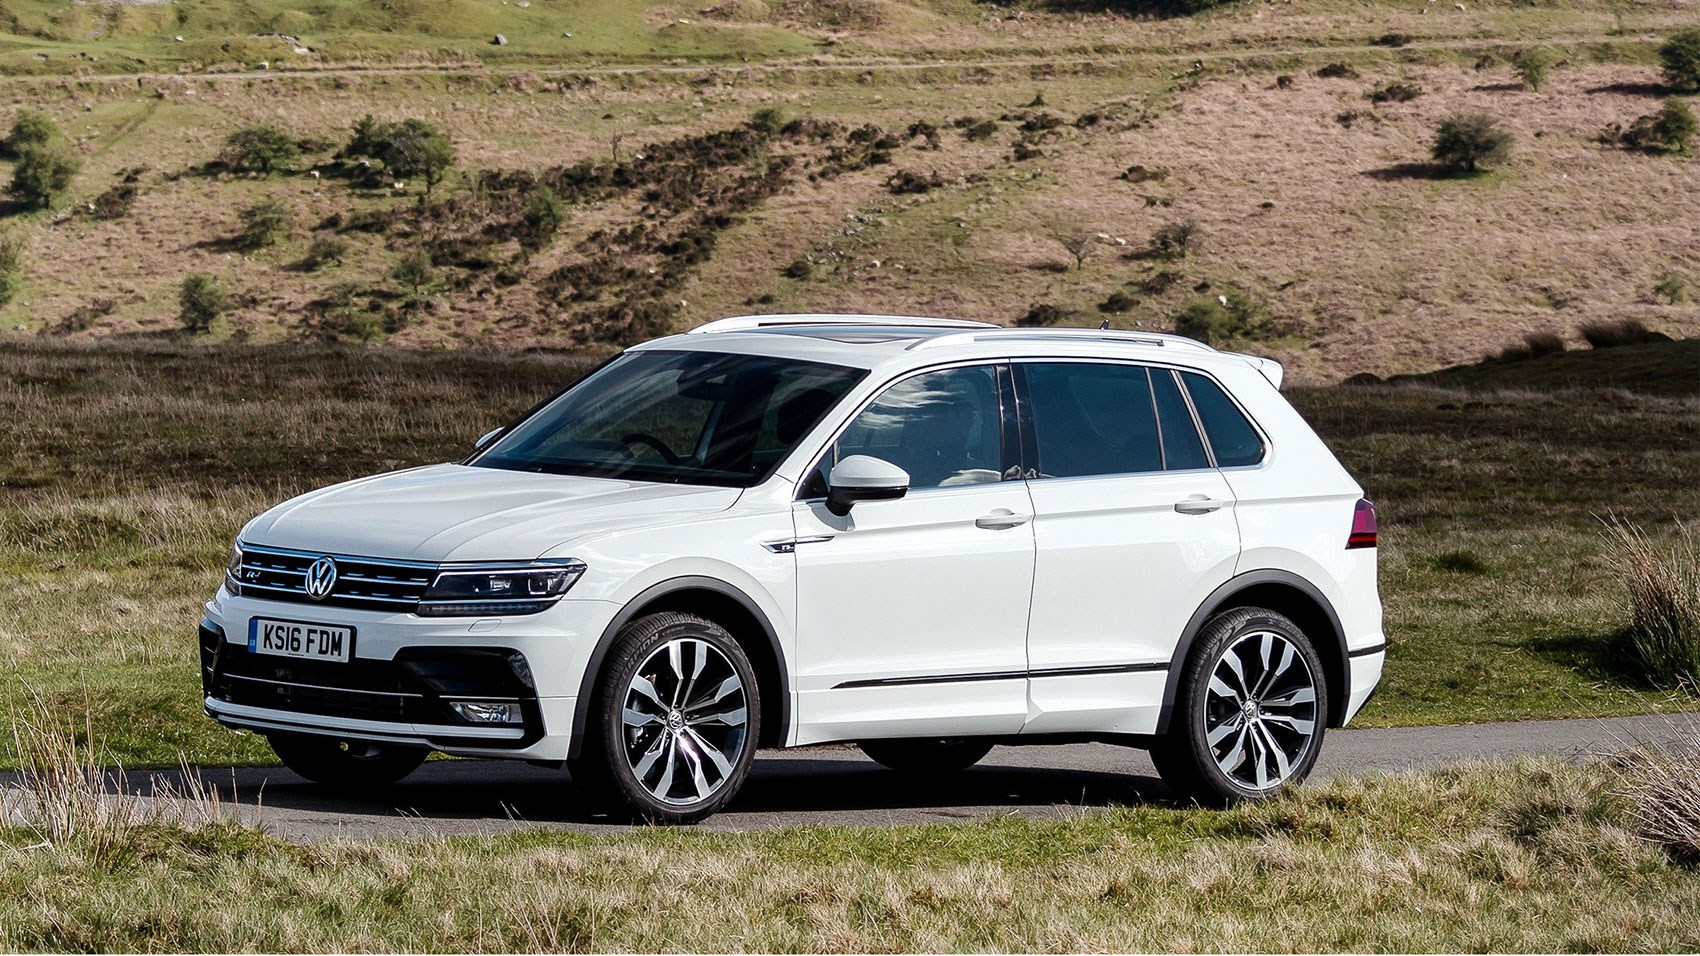 vw tiguan r line 2 0 tdi 150 4motion dsg 2016 review by. Black Bedroom Furniture Sets. Home Design Ideas